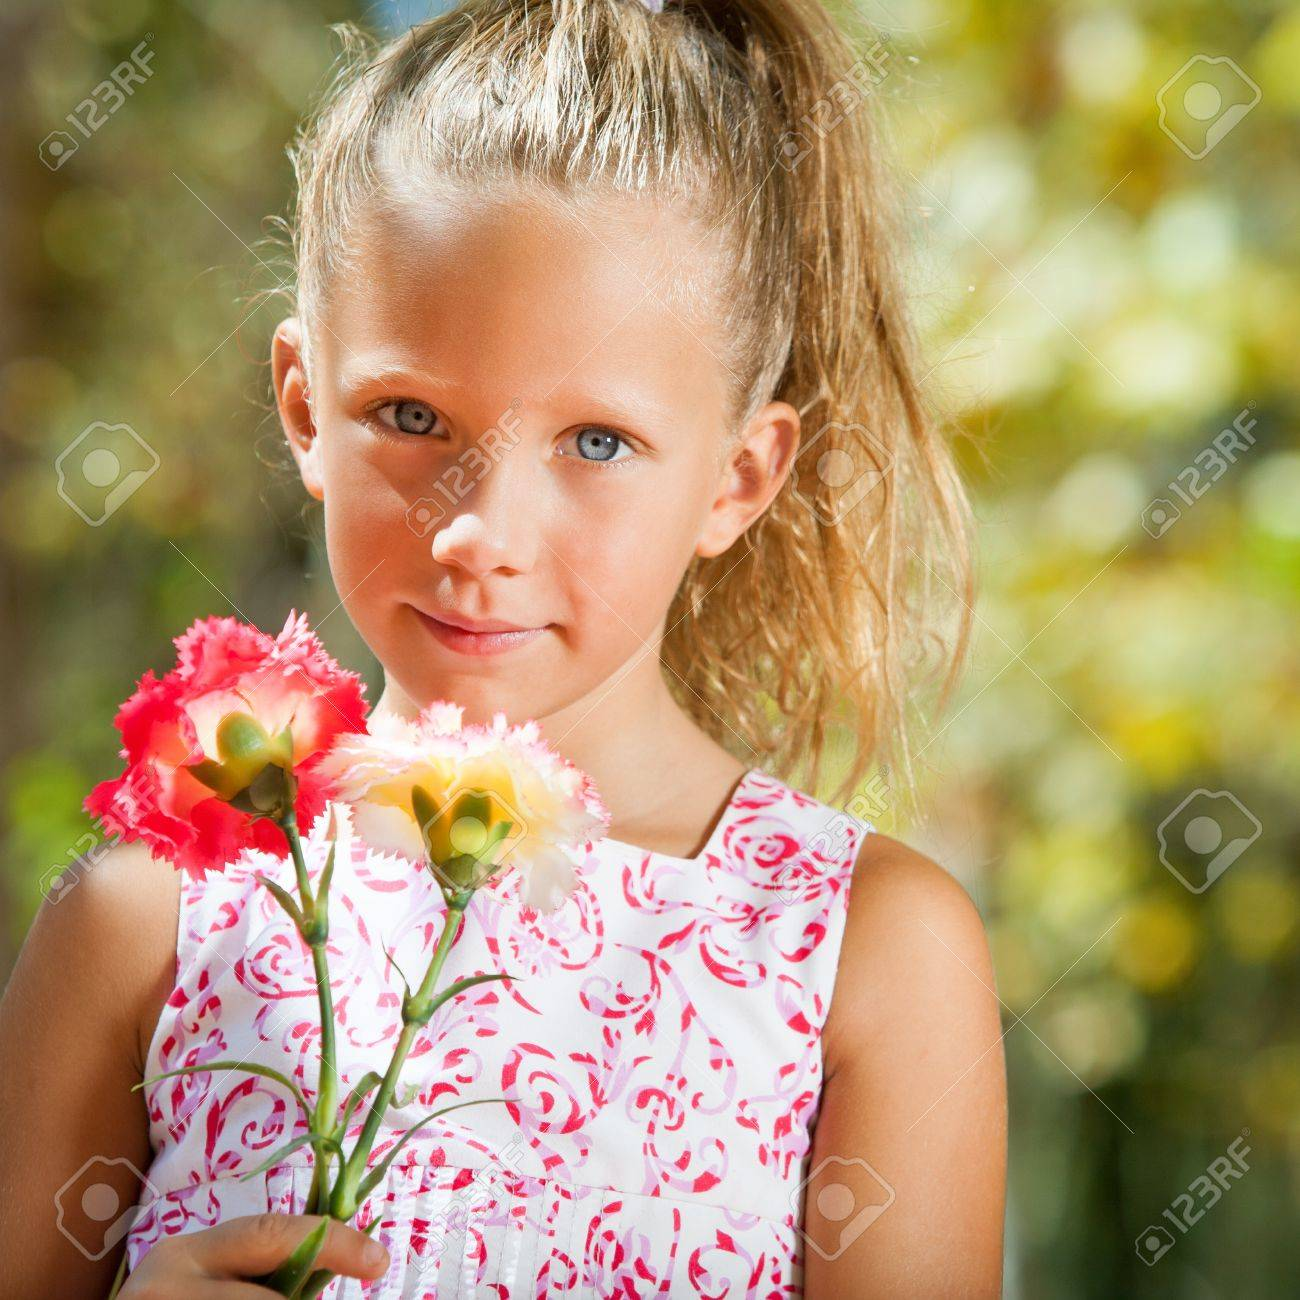 Close up portrait of cute girl holding flowers in garden. Stock Photo - 15404485